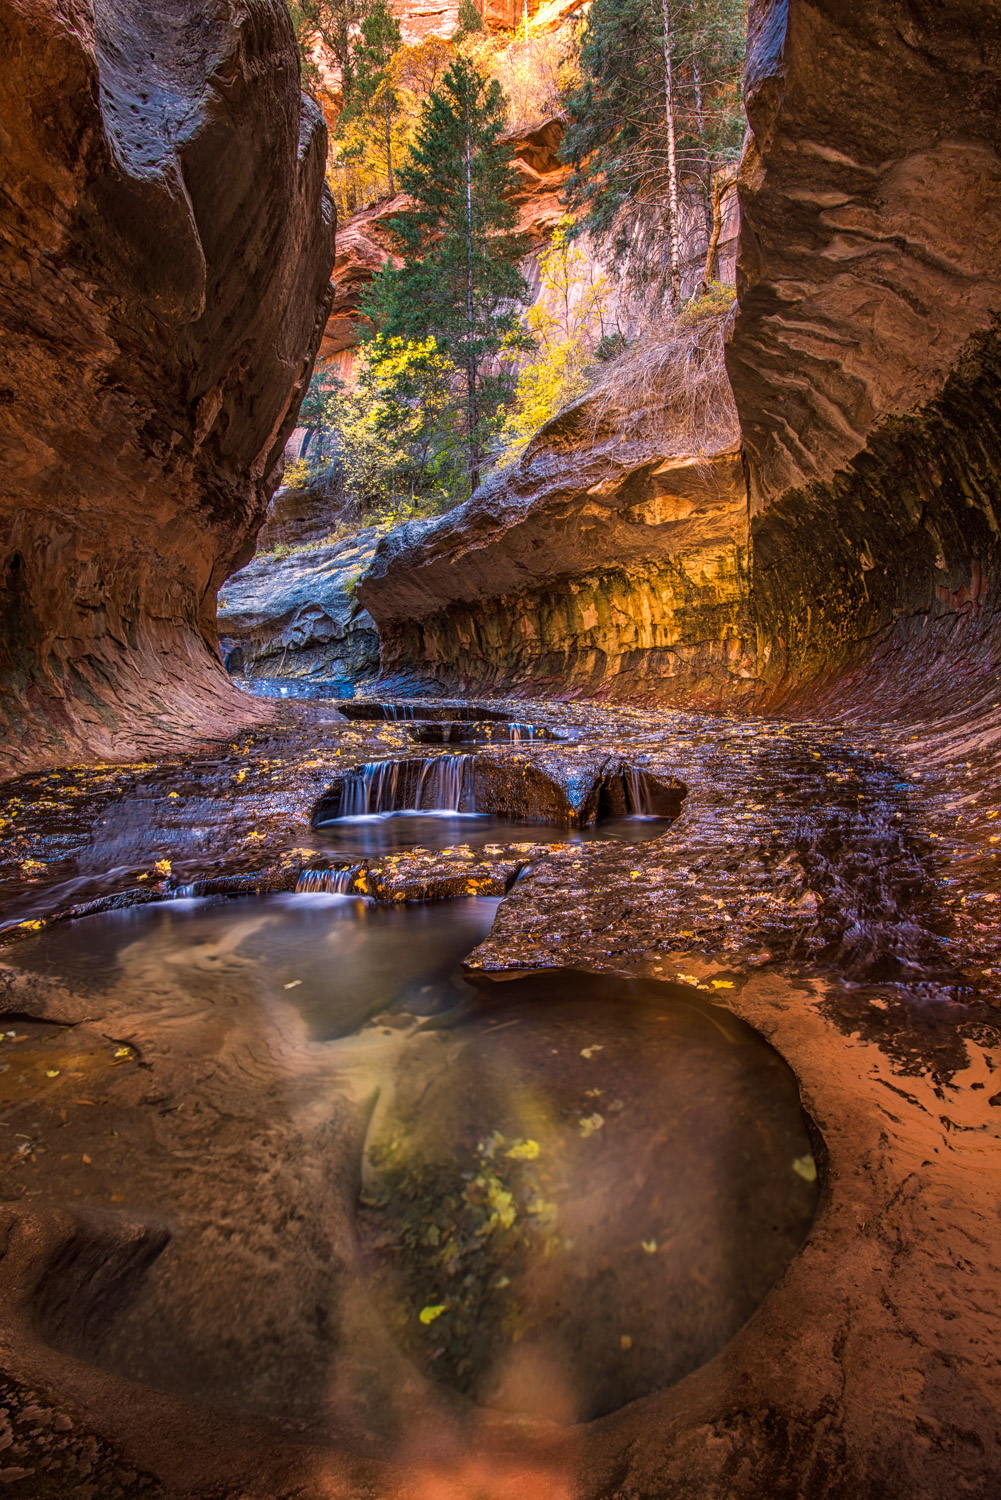 Autumn color adorns the Subway in Zion National Park, Utah.